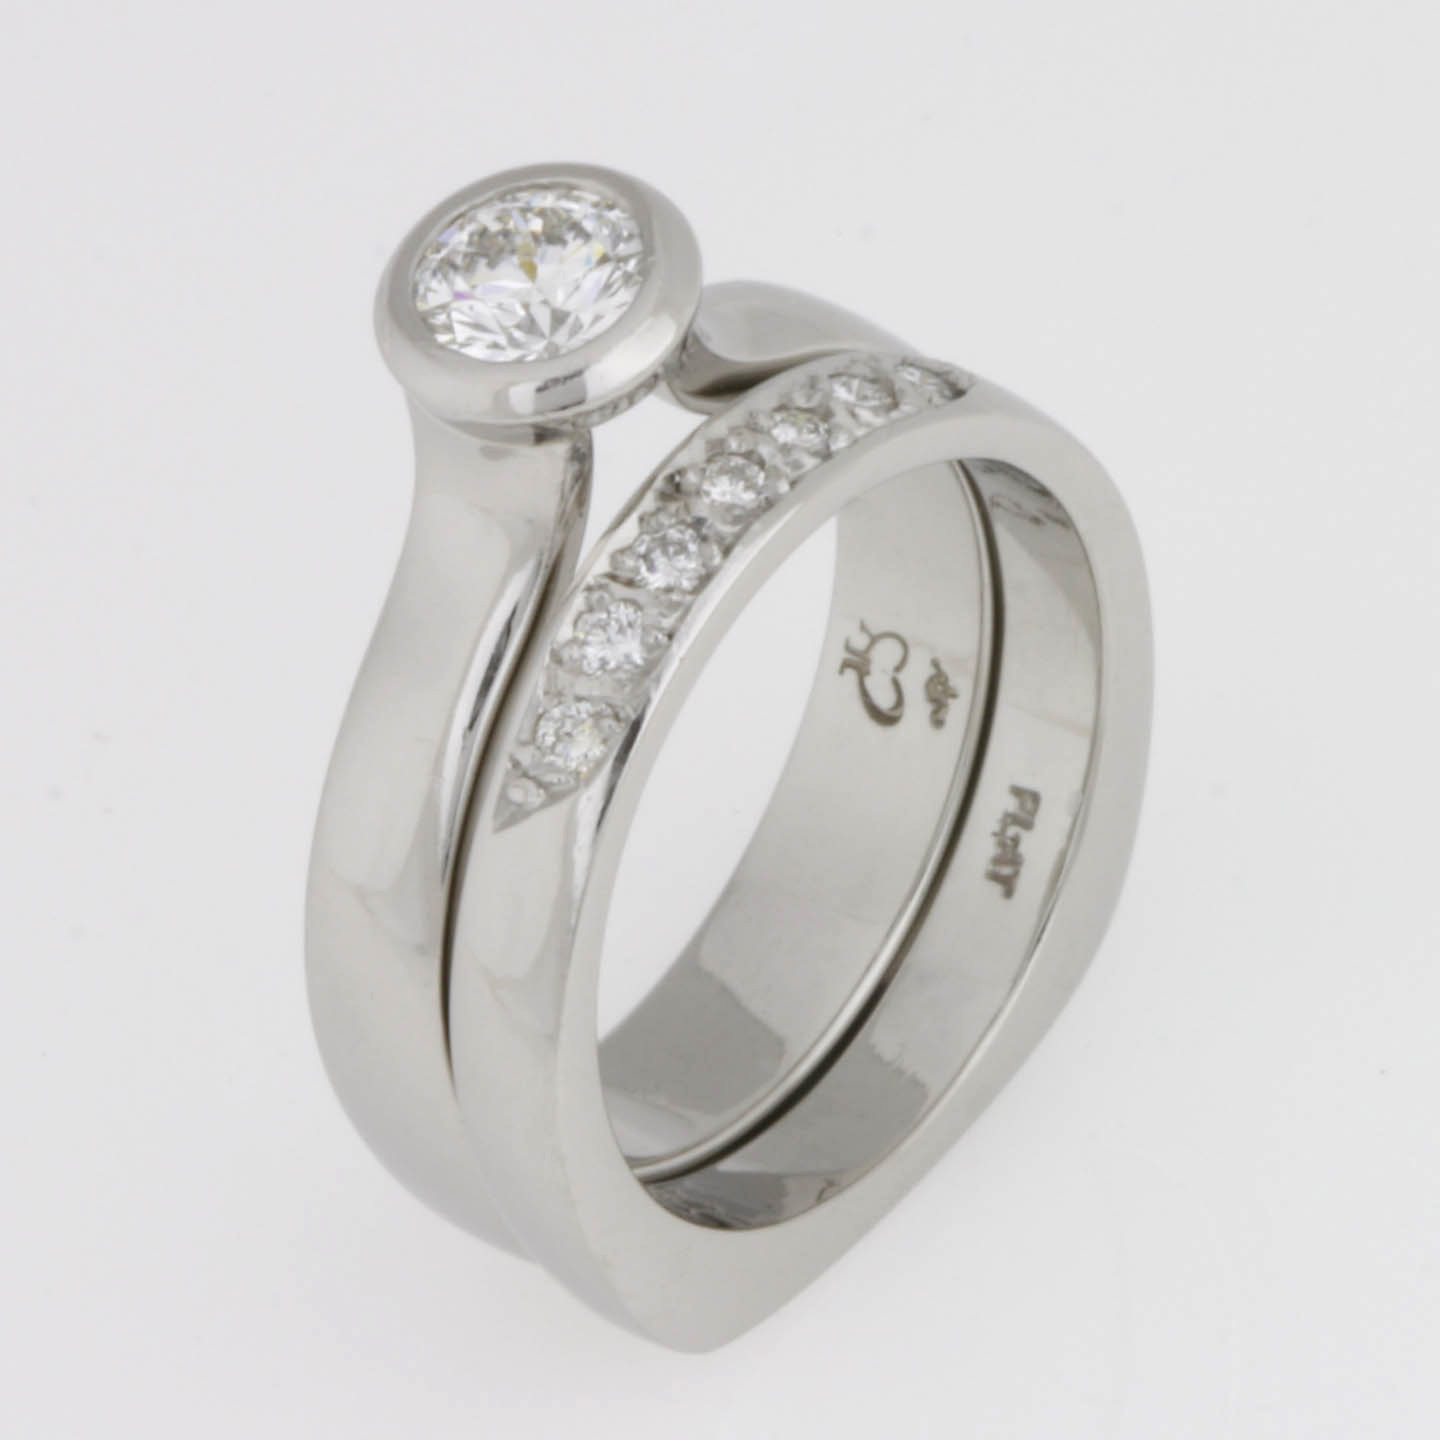 Handmade ladies platinum and diamond engagement & wedding ring set